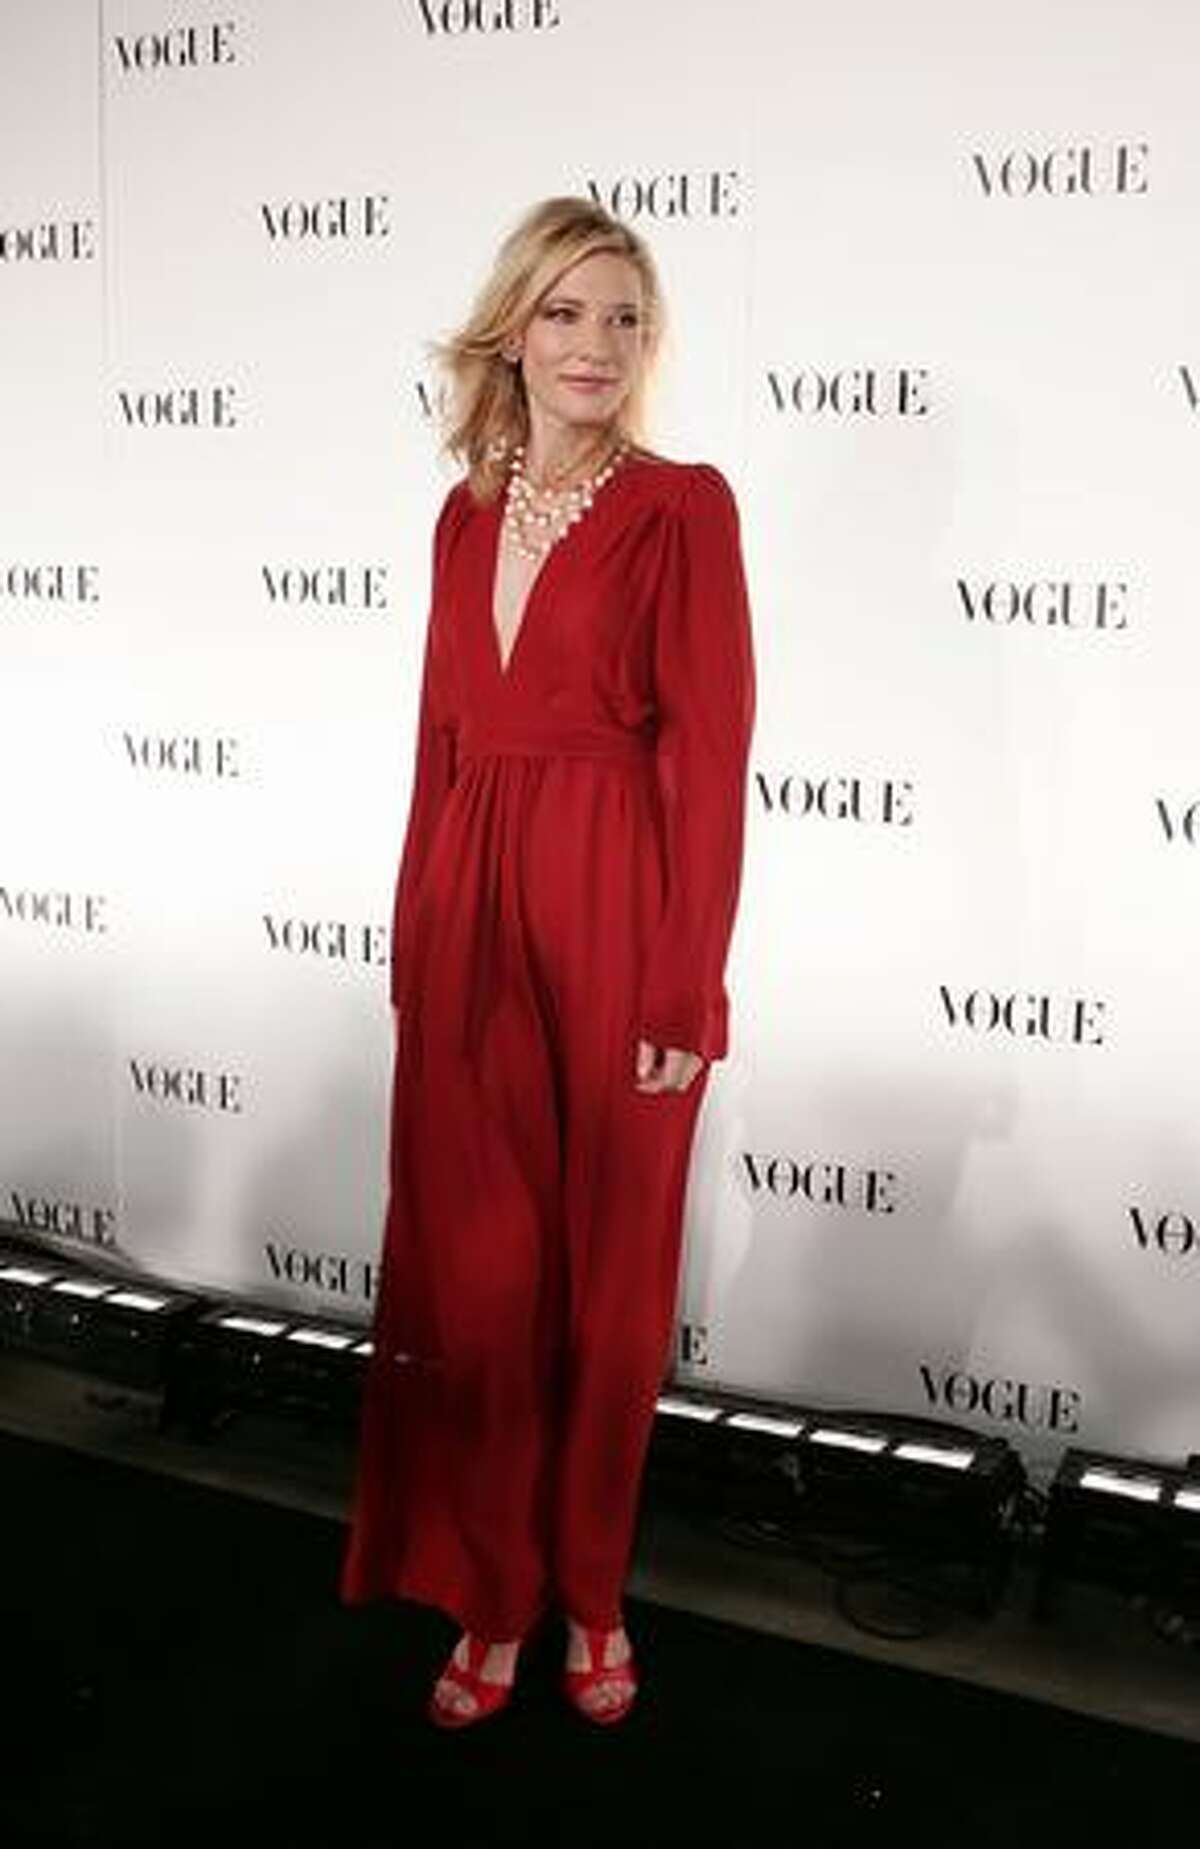 Cate Blanchett arrives for Vogue Australia's 50th Anniversary Party at Fox Studios in Sydney, Australia.